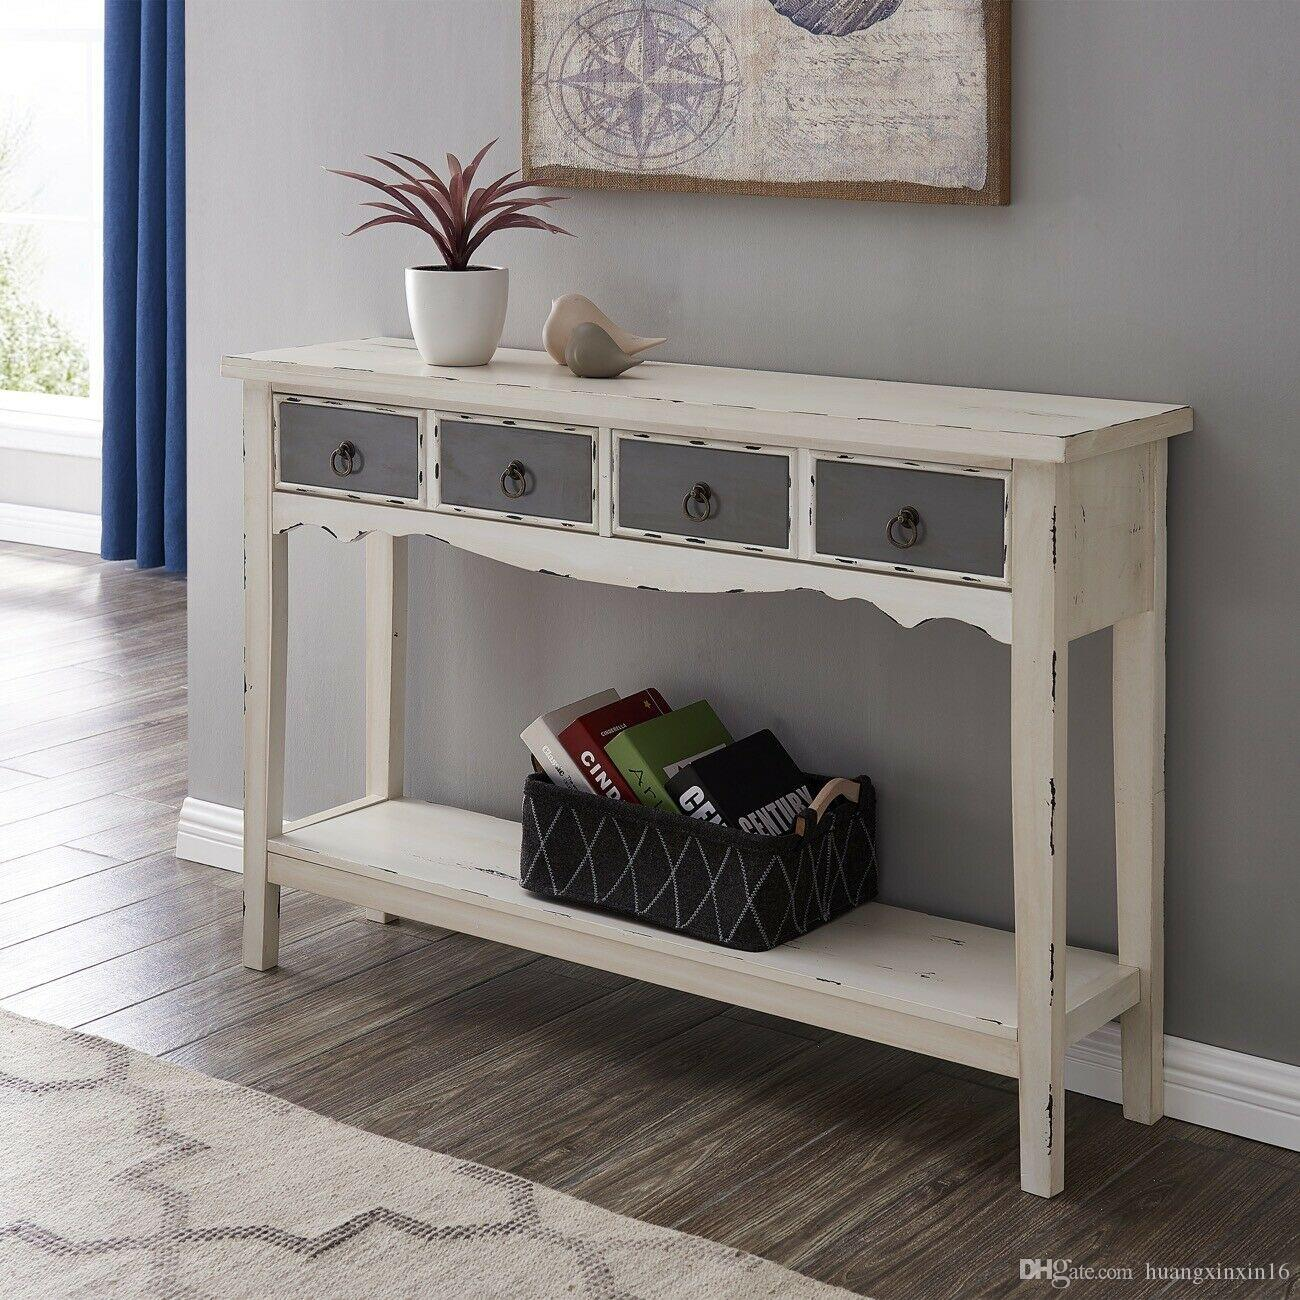 2019 Modern Living Room 2 Drawer Rectangular Console Table In Distressed White Finish From Huangxinxin16 100 5 Dhgate Com